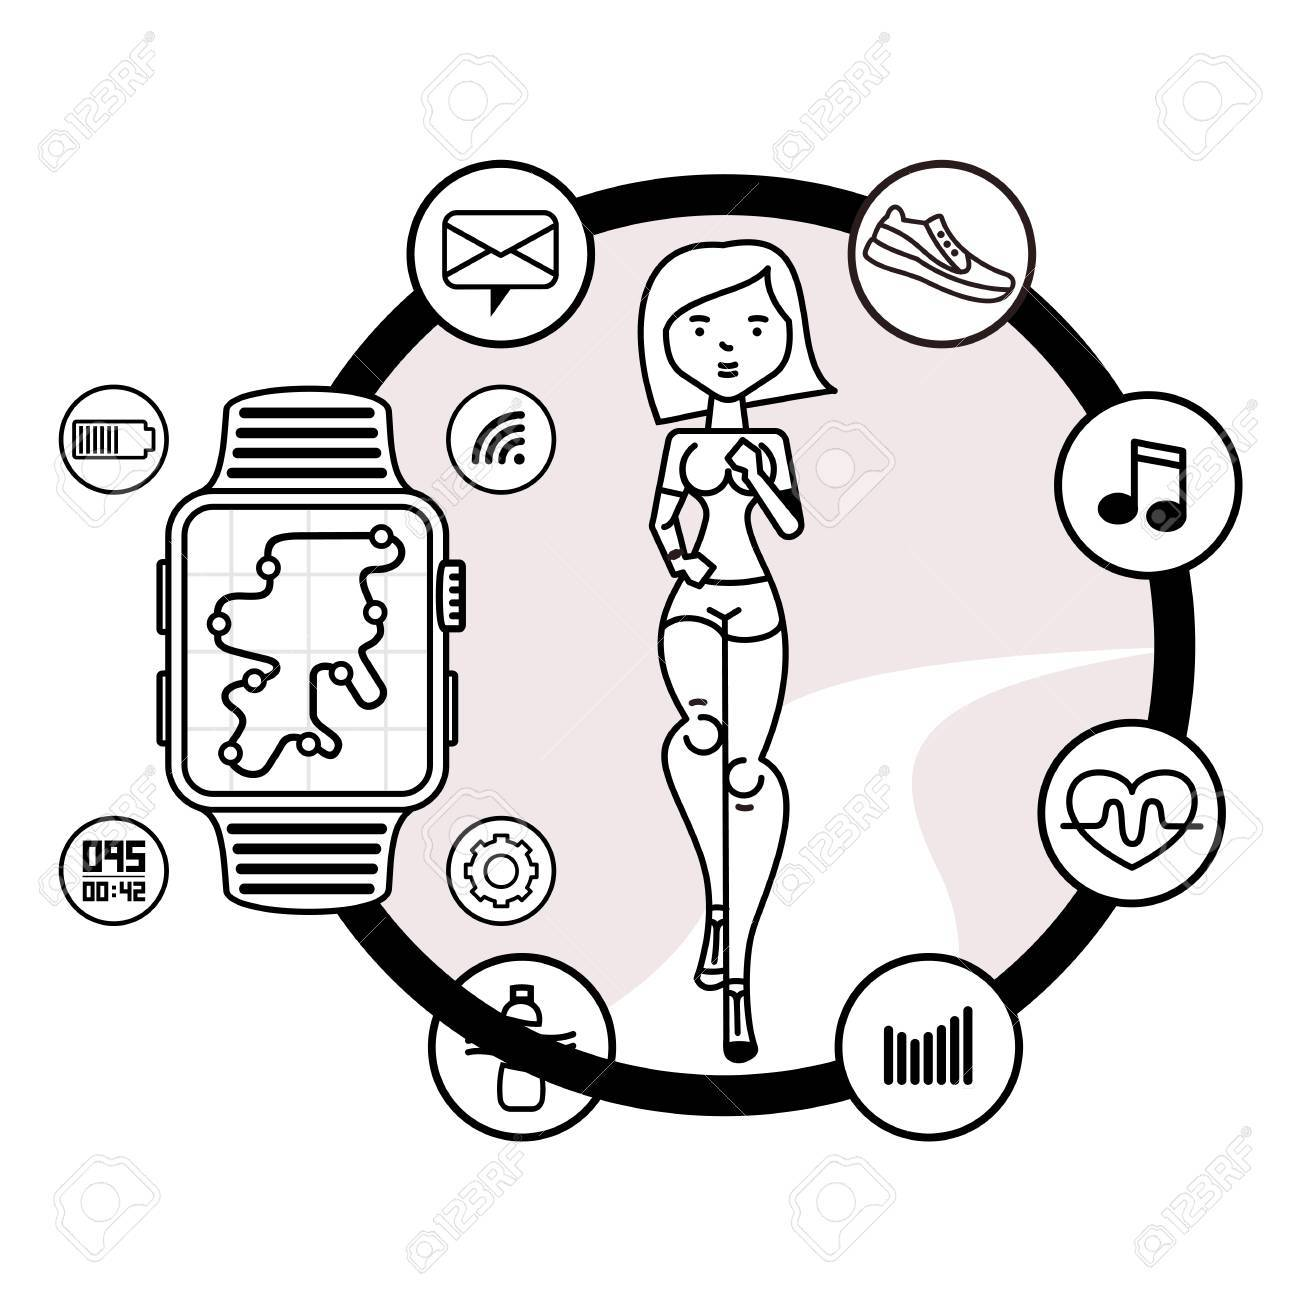 Vector icons running girl and smart watch with watch app in cartoon